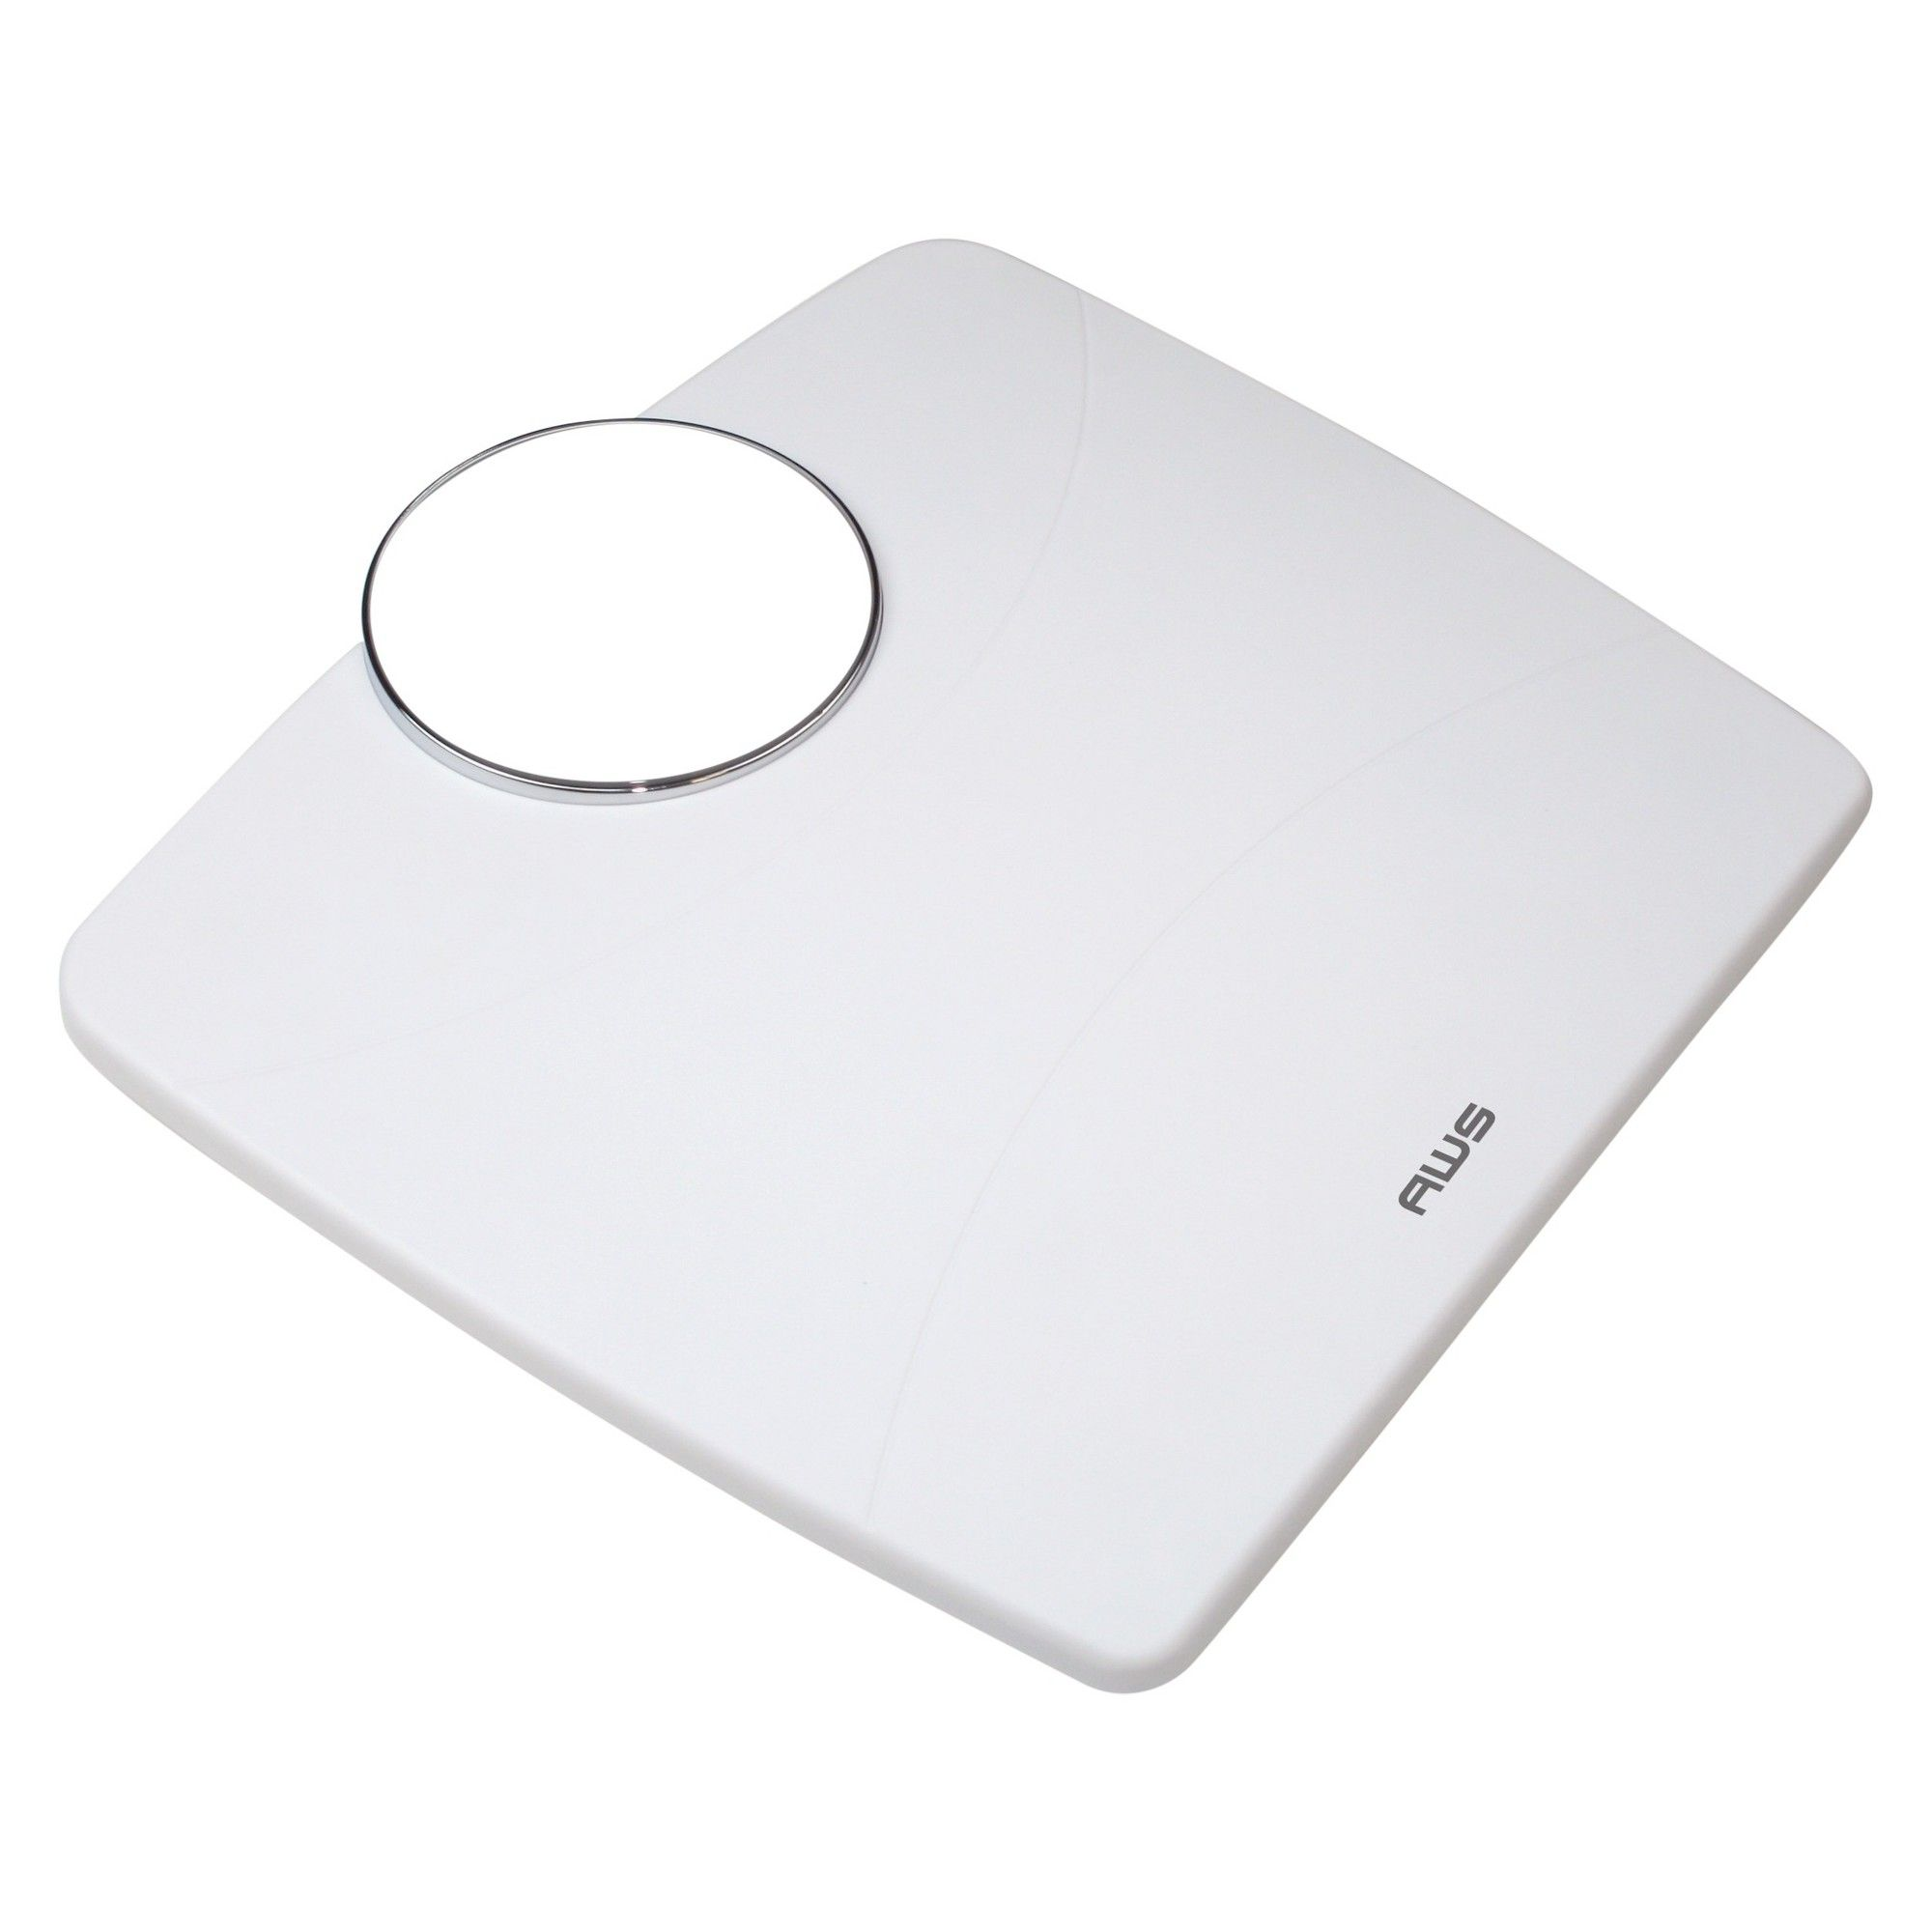 o of meter inspirational scales minimalist health scale mechanical bathroom sets best